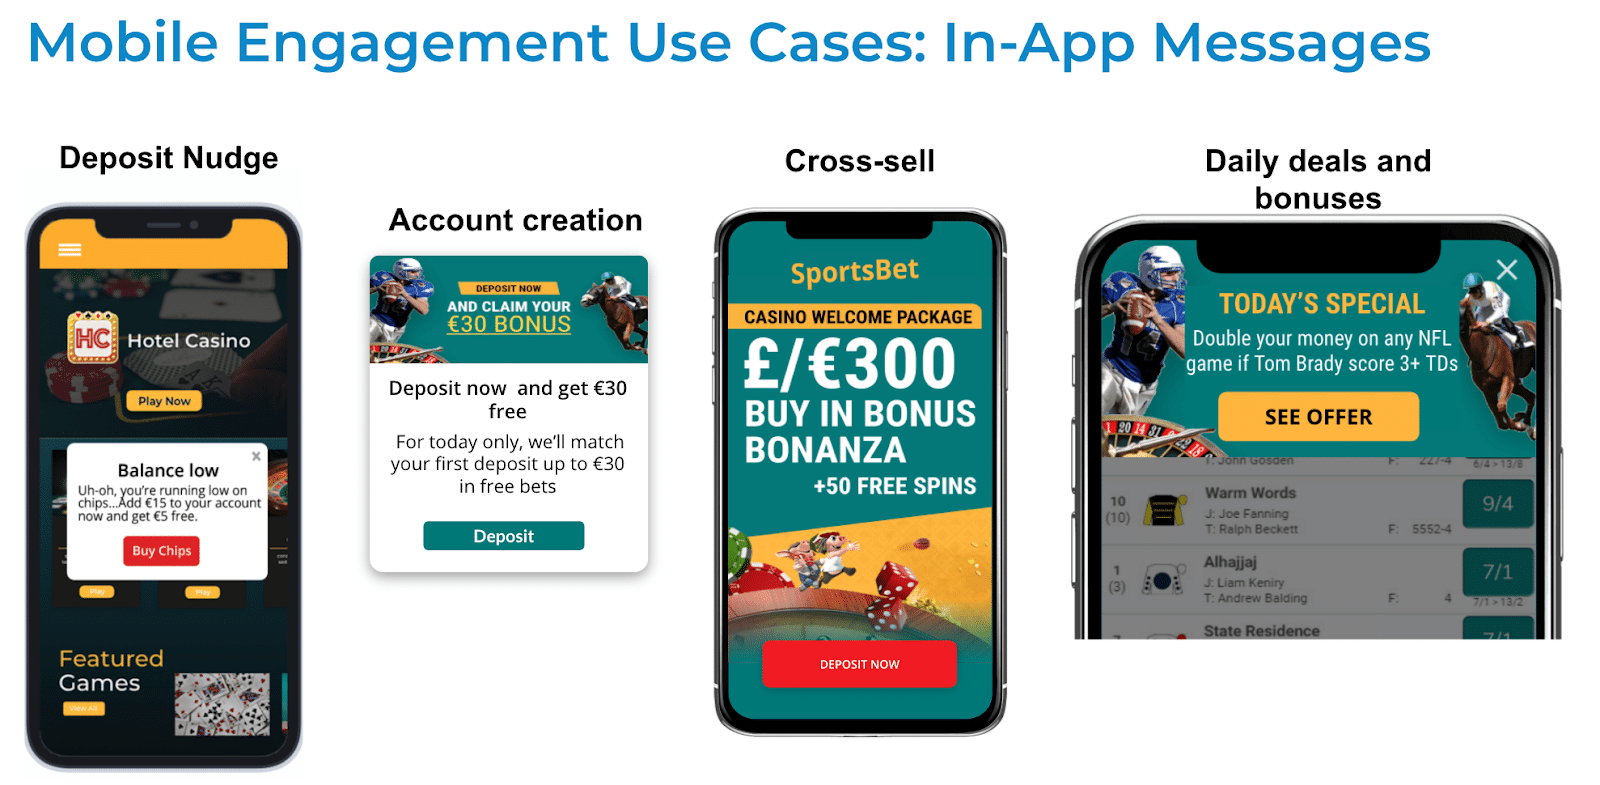 In-app and on-site messages used to drive engagement